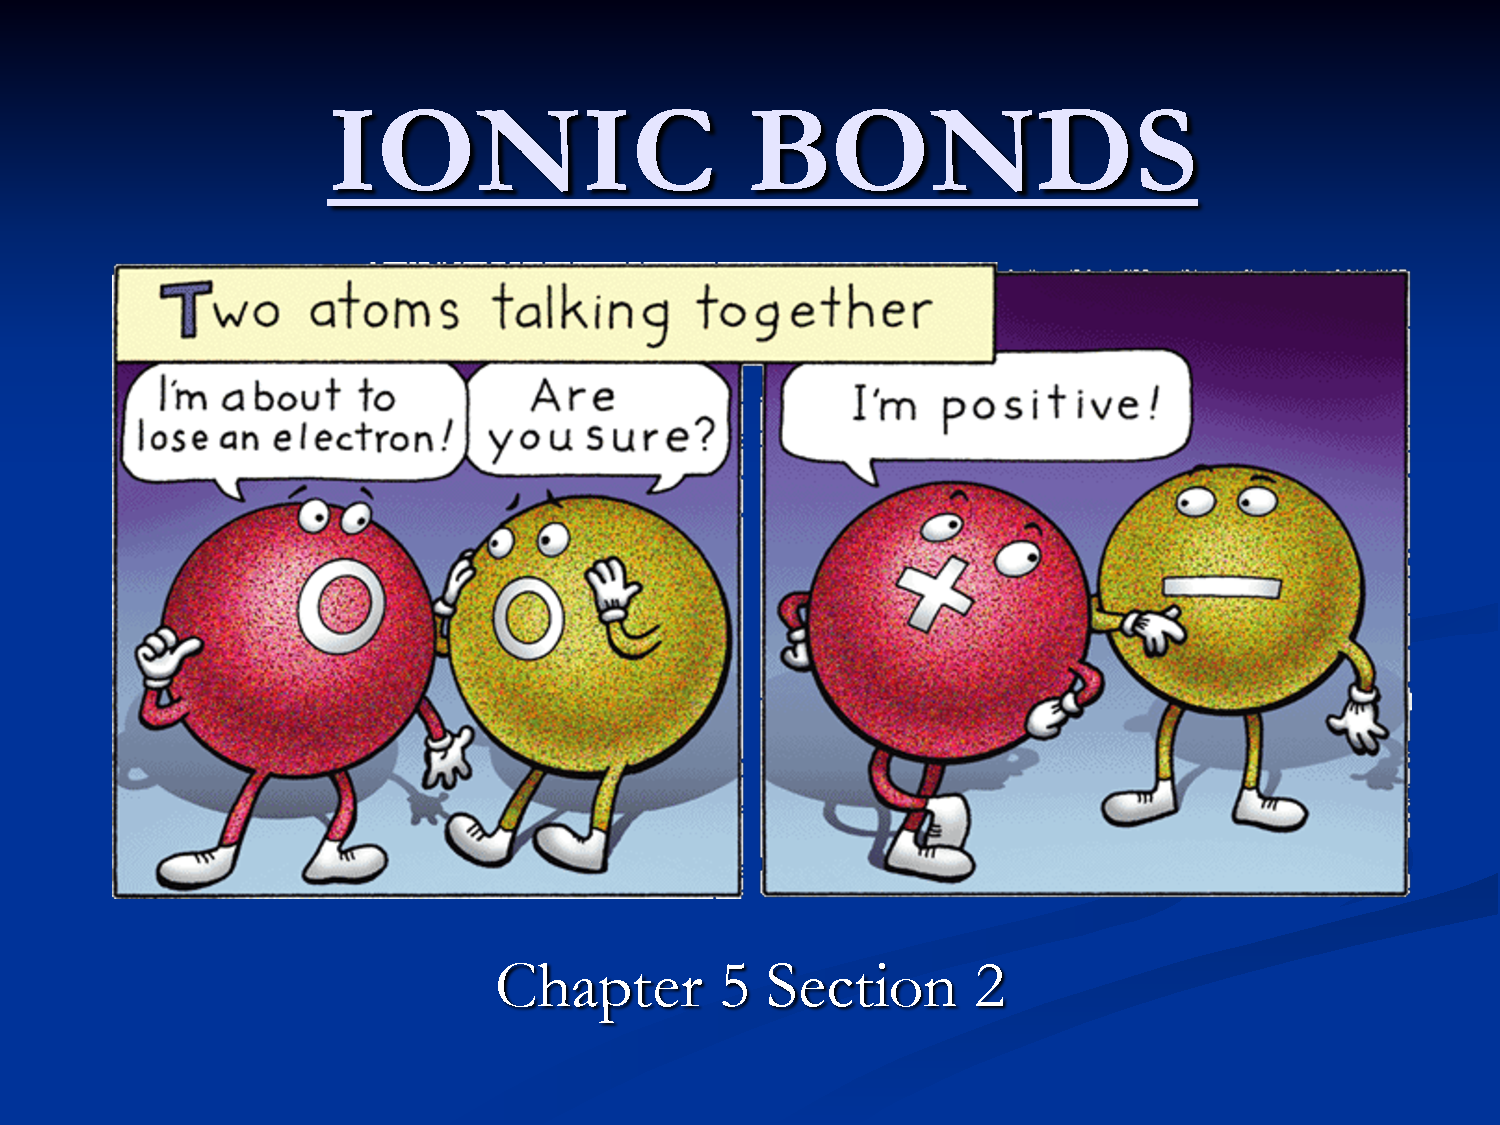 medium resolution of some humorous diagrams from the internet with the odd sexist joke thrown in more on ionic bonding